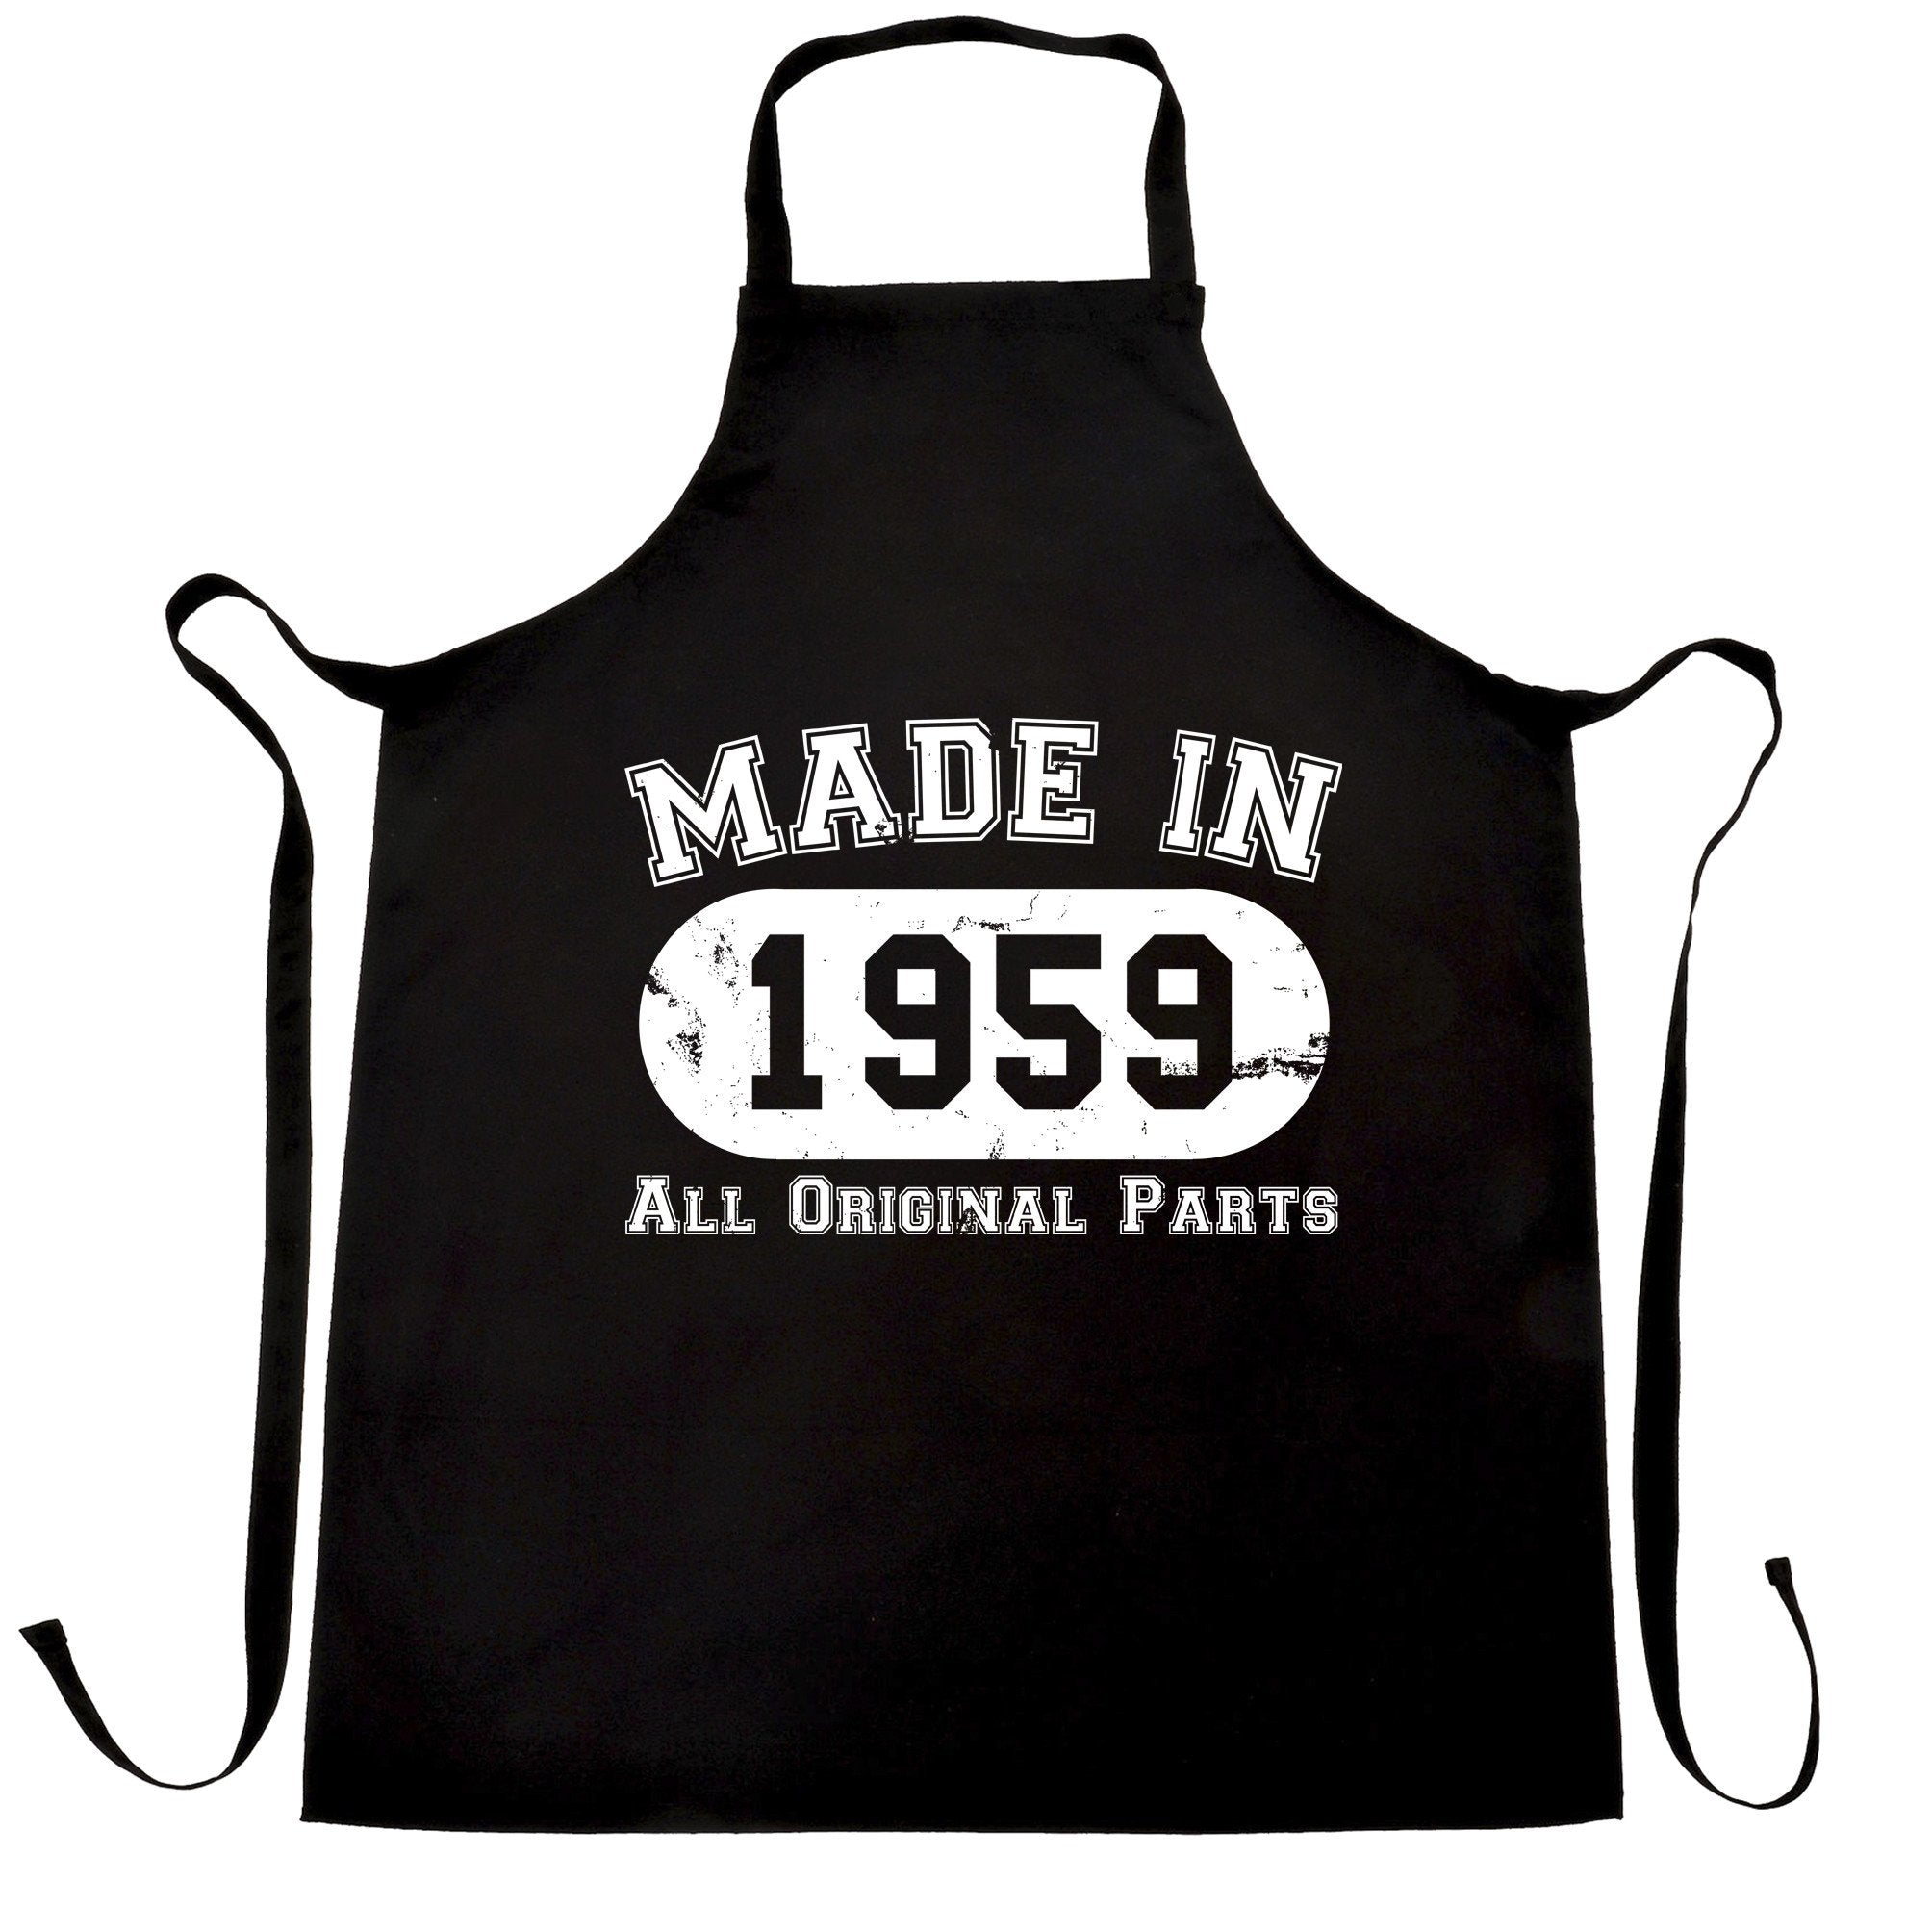 Made in 1959 All Original Parts Apron [Distressed]